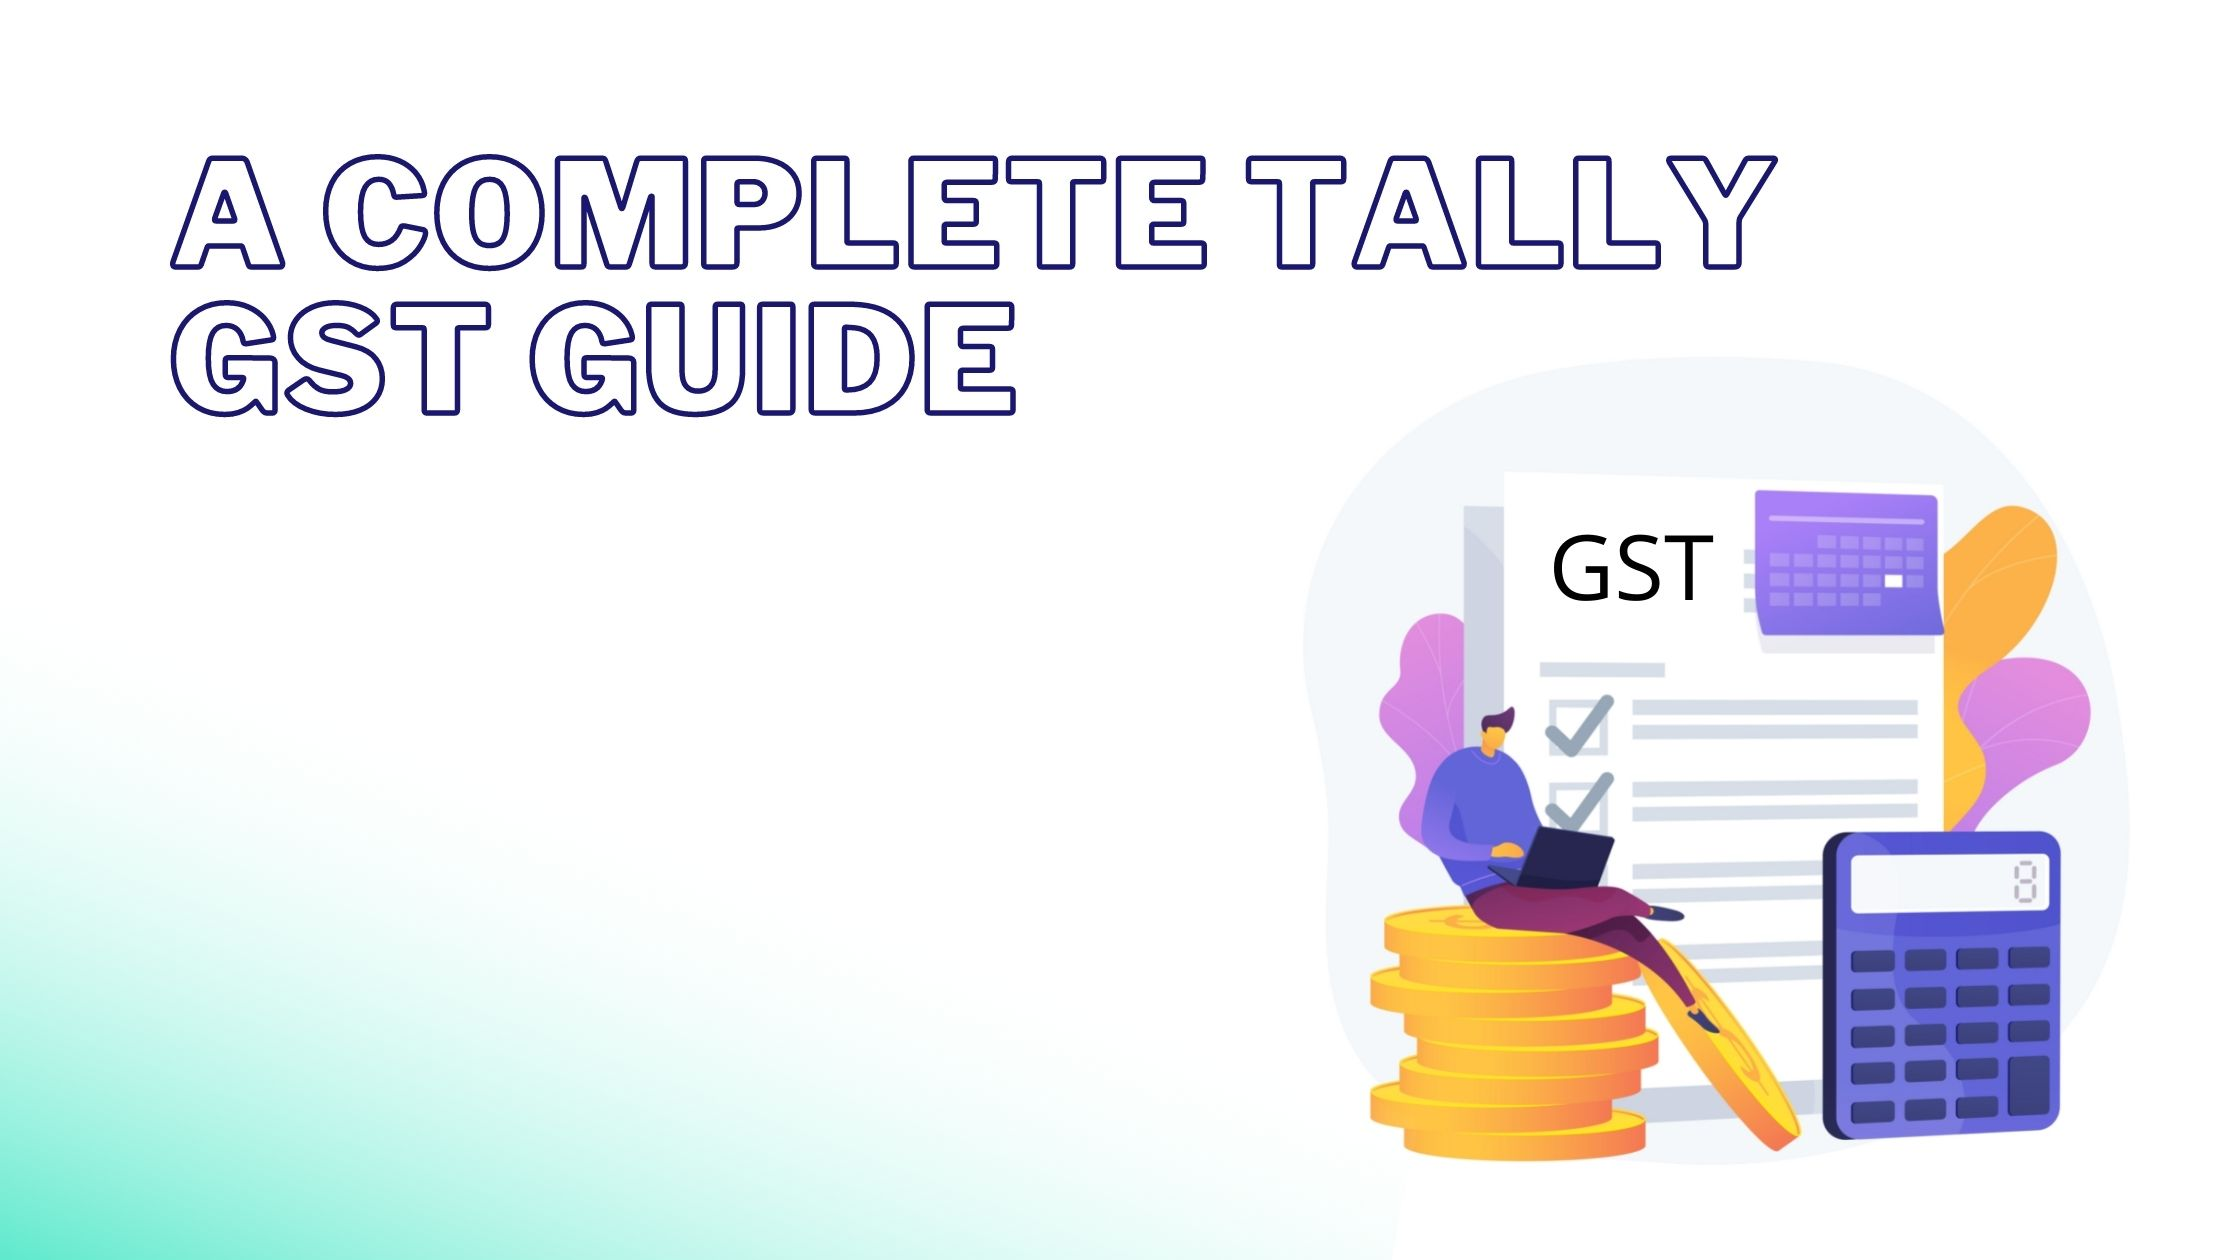 Tally GST guide